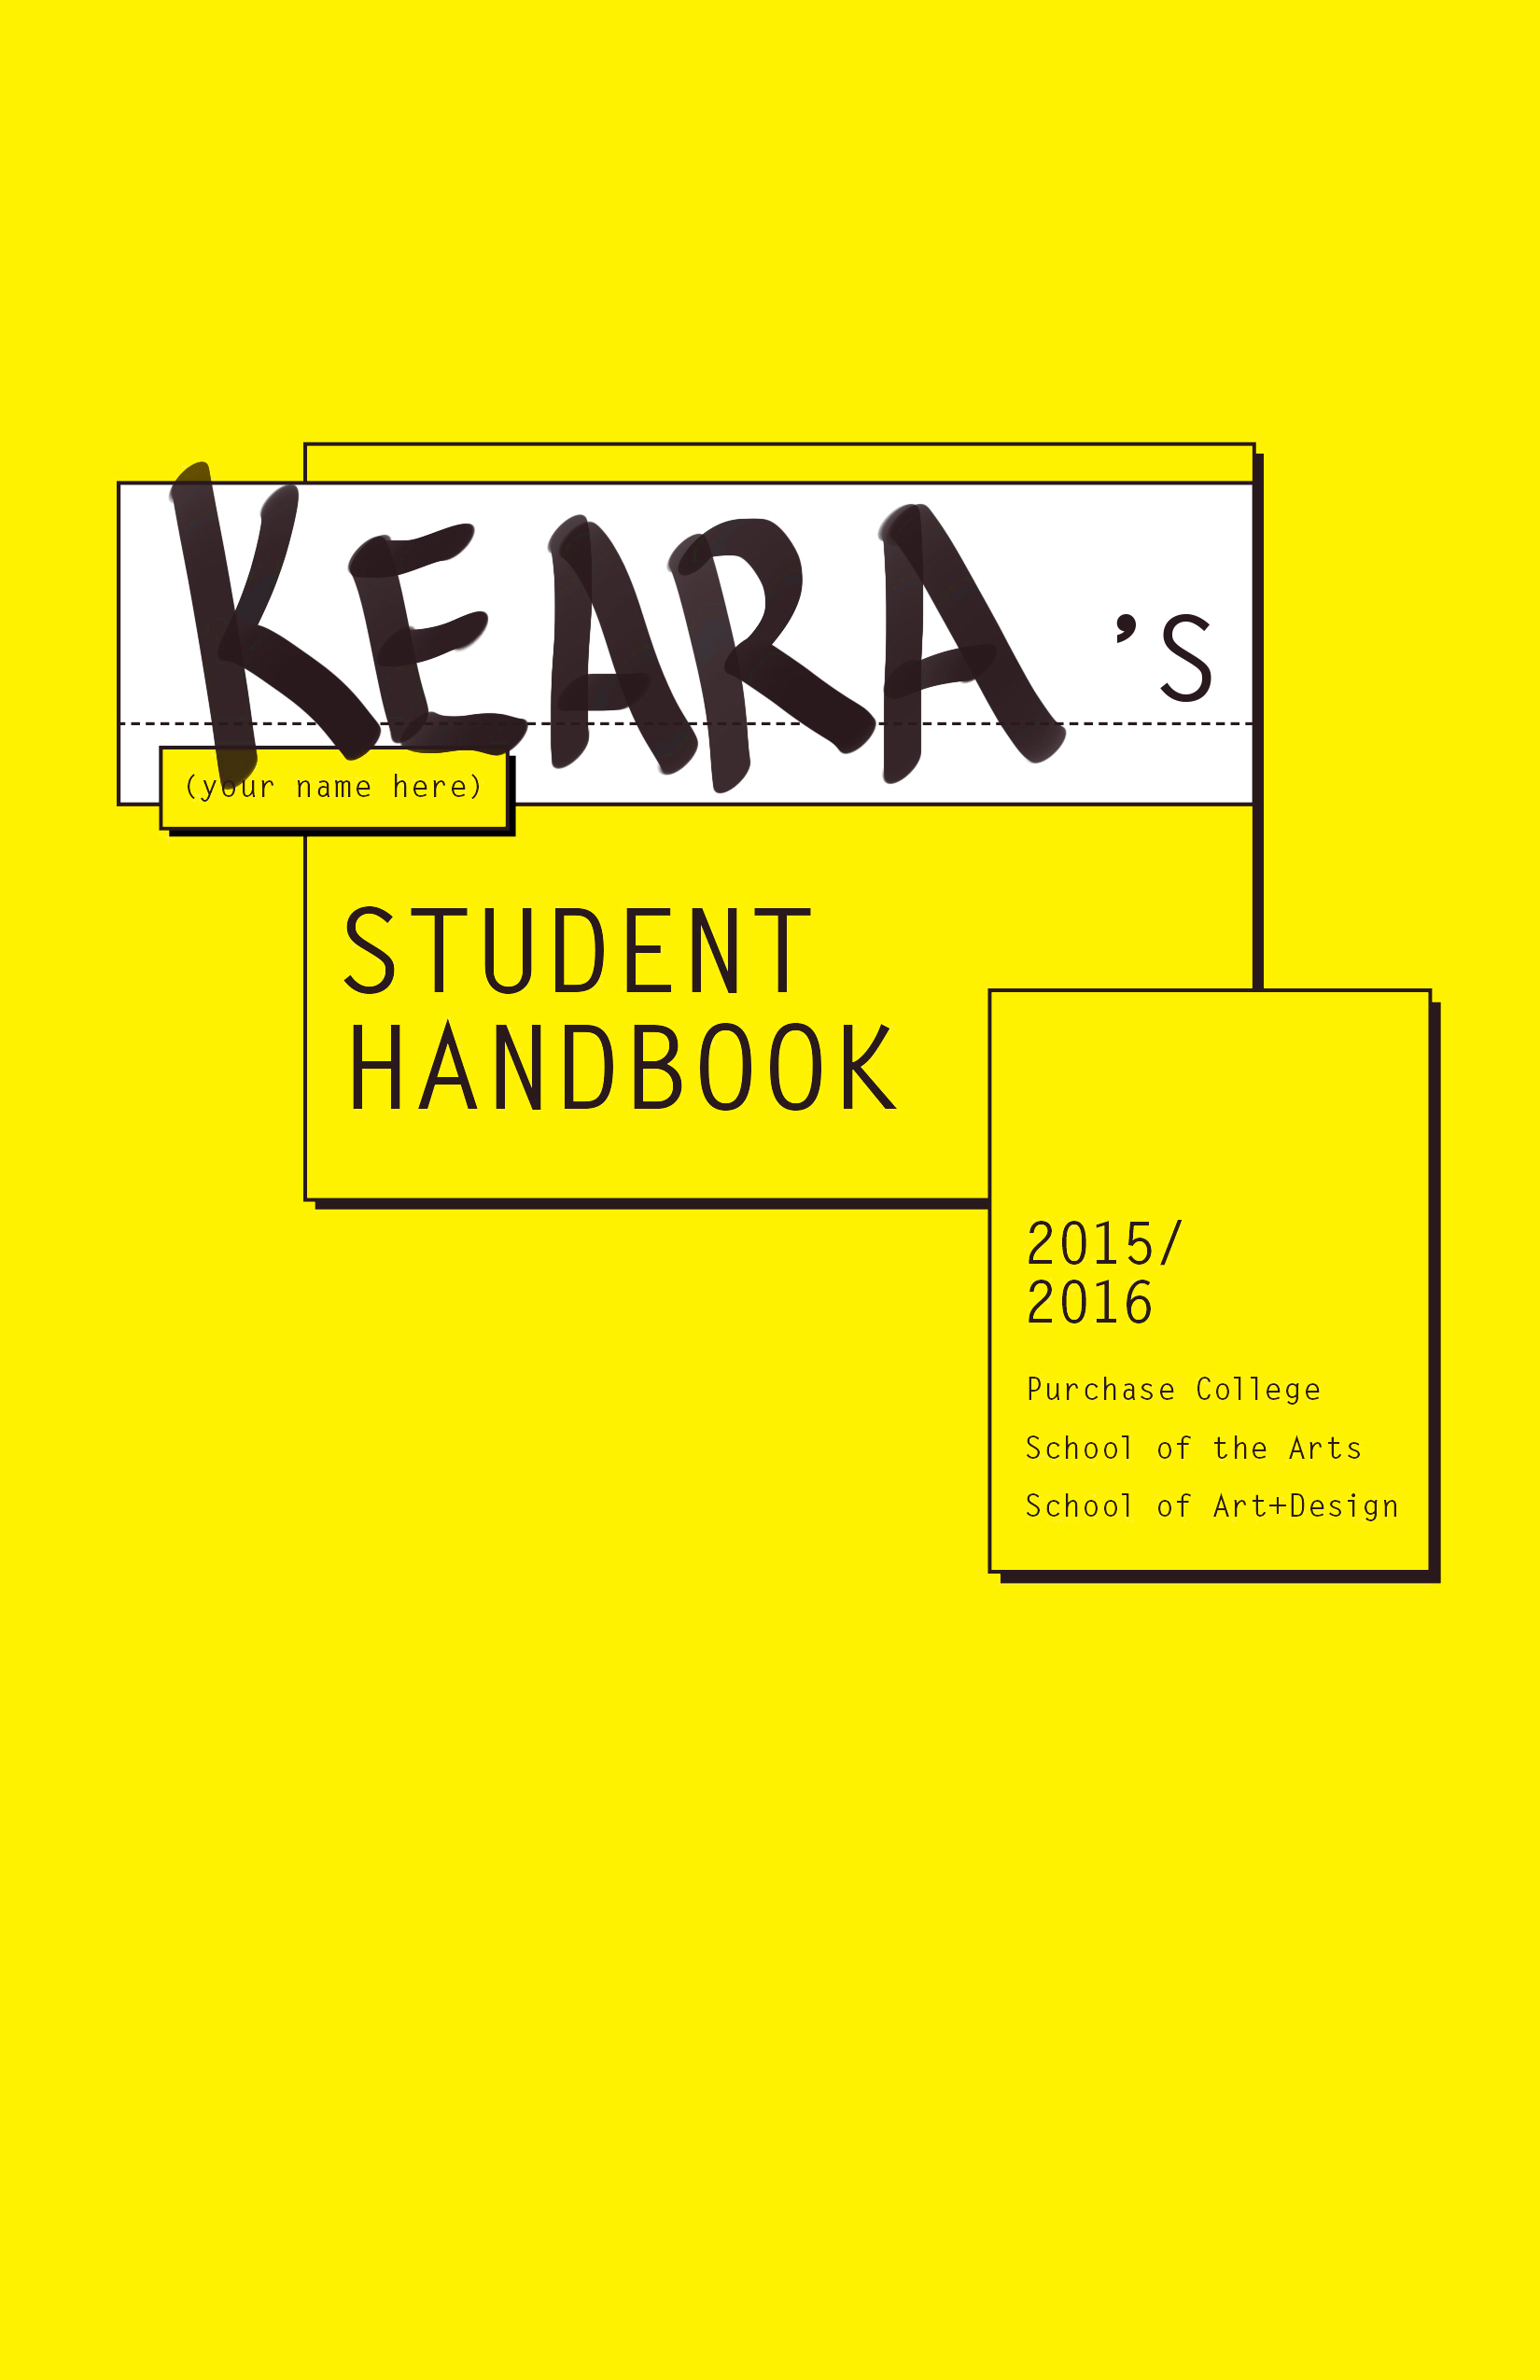 2015-16 SUNY Purchase Student Handbook by CB, keara